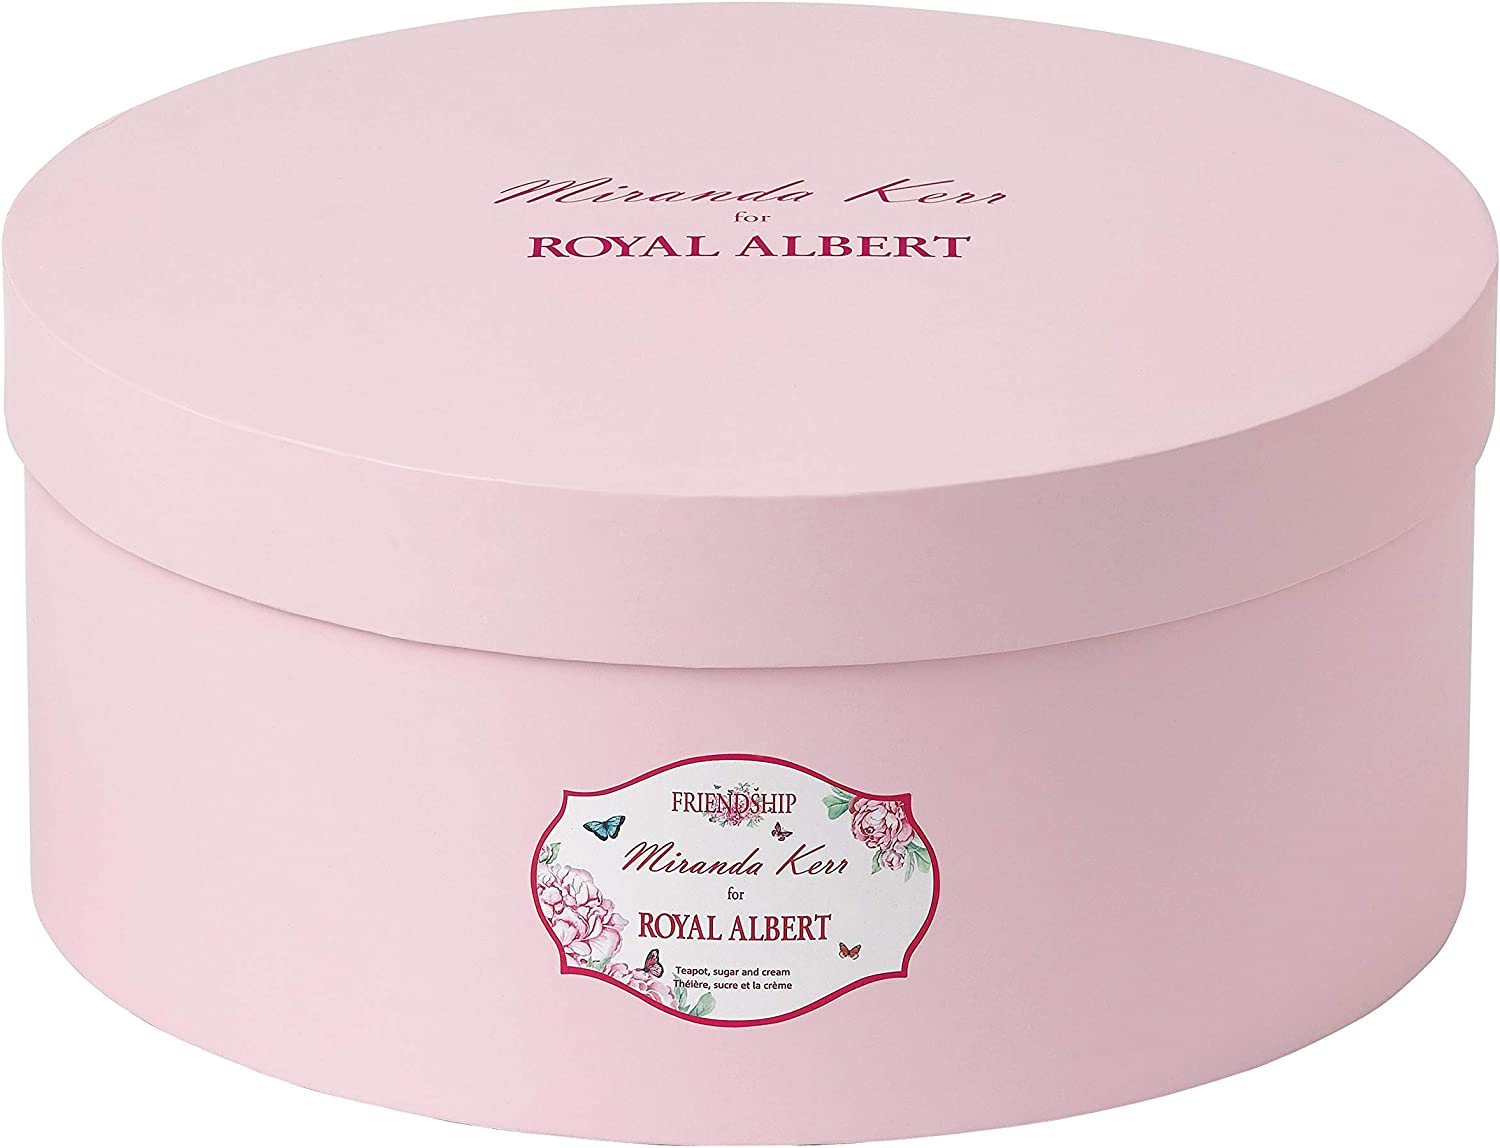 Blanc Royal Albert lamiti/é Miranda Kerr Lot de 3 Porcelaine